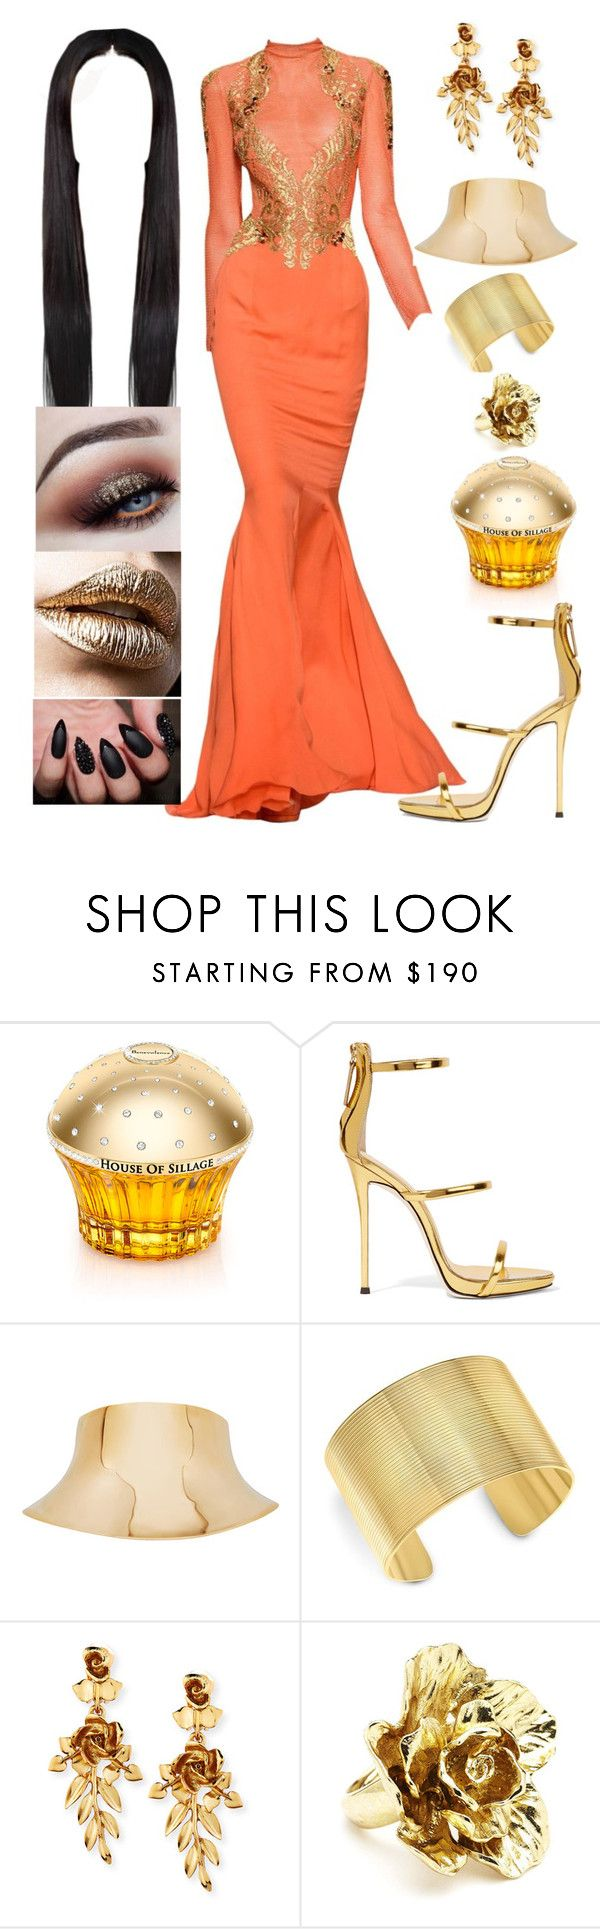 """""""Untitled #2044"""" by the-wanted-potato ❤ liked on Polyvore featuring House of Sillage, Giuseppe Zanotti, Balmain, Theo Fennell, Oscar de la Renta and Pat McGrath"""